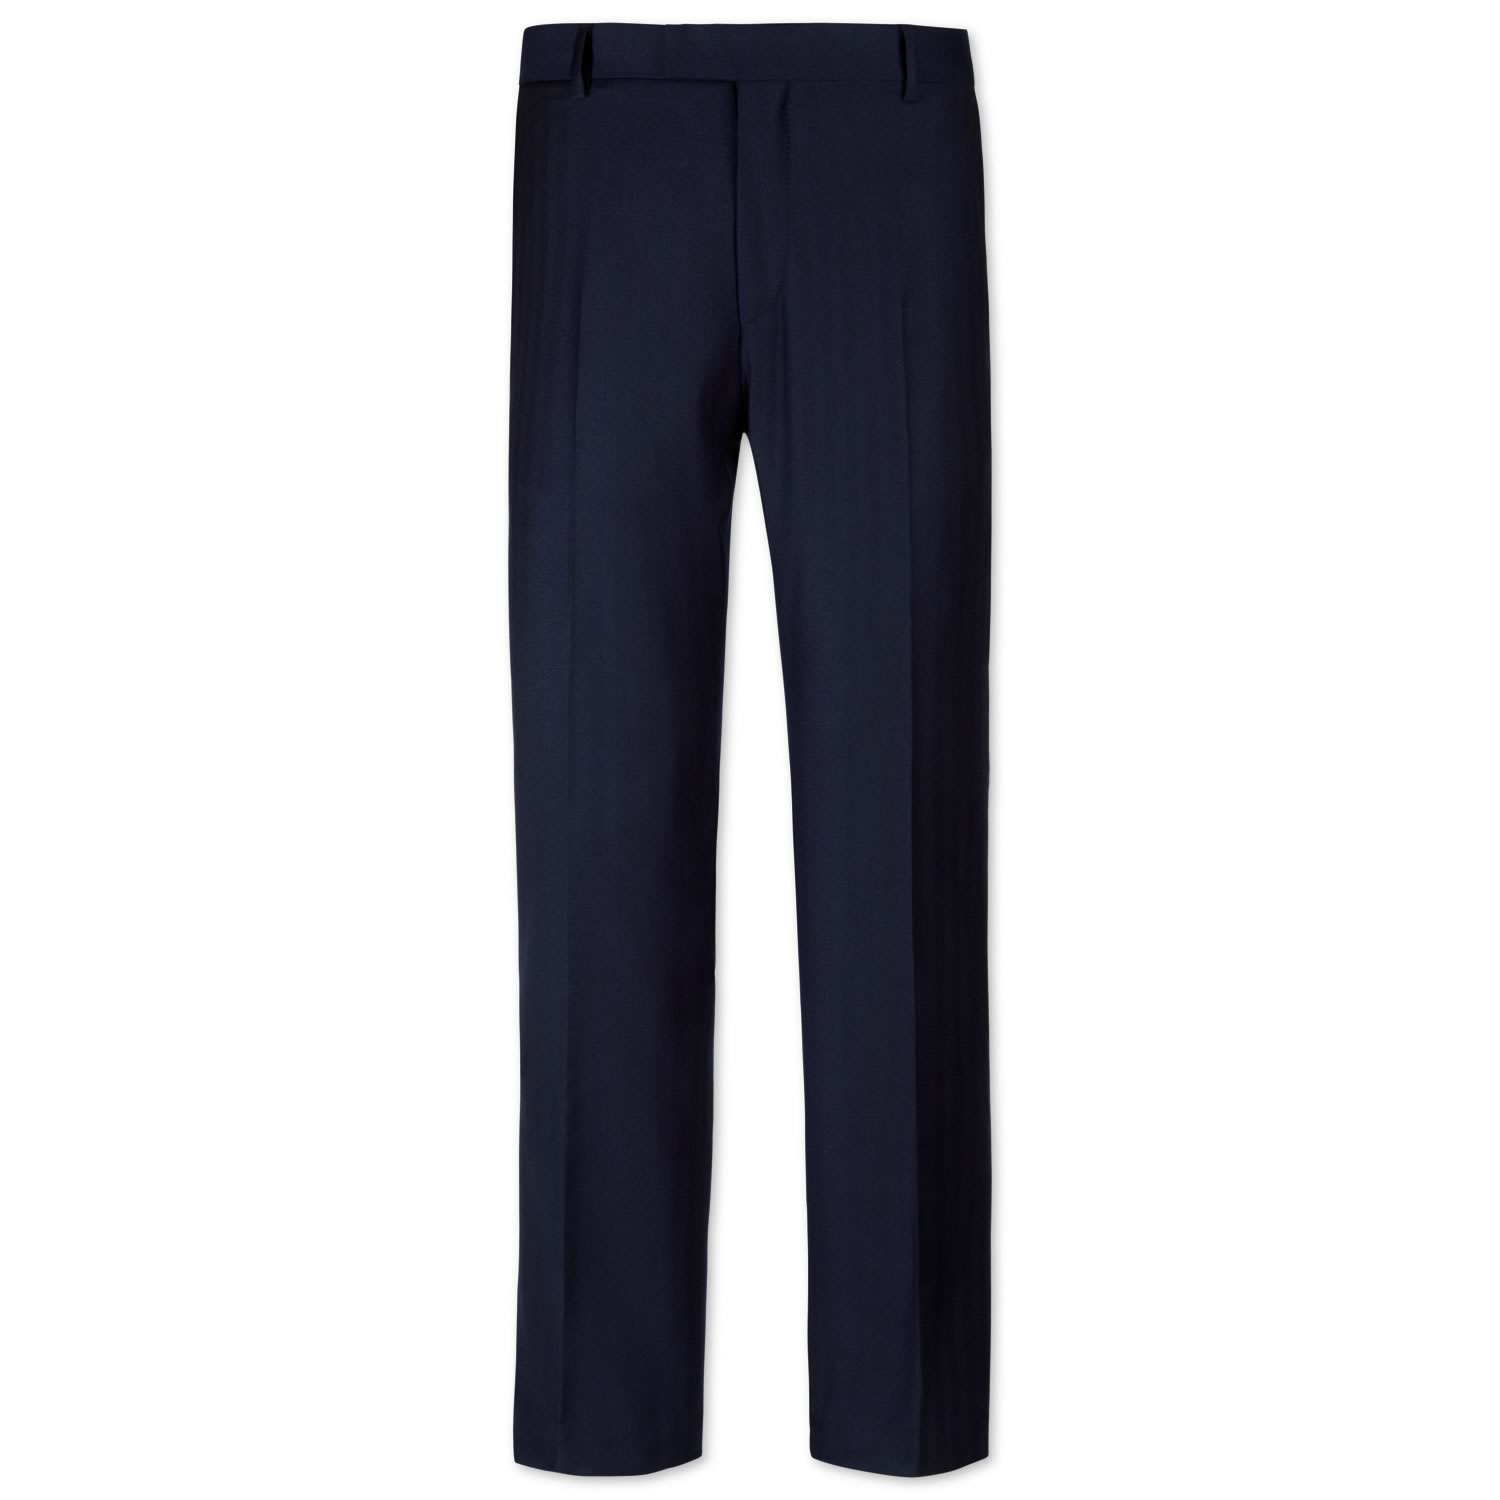 Navy Slim Fit Herringbone Yorkshire Worsted Luxury Suit Trousers Size W30 L38 by Charles Tyrwhitt